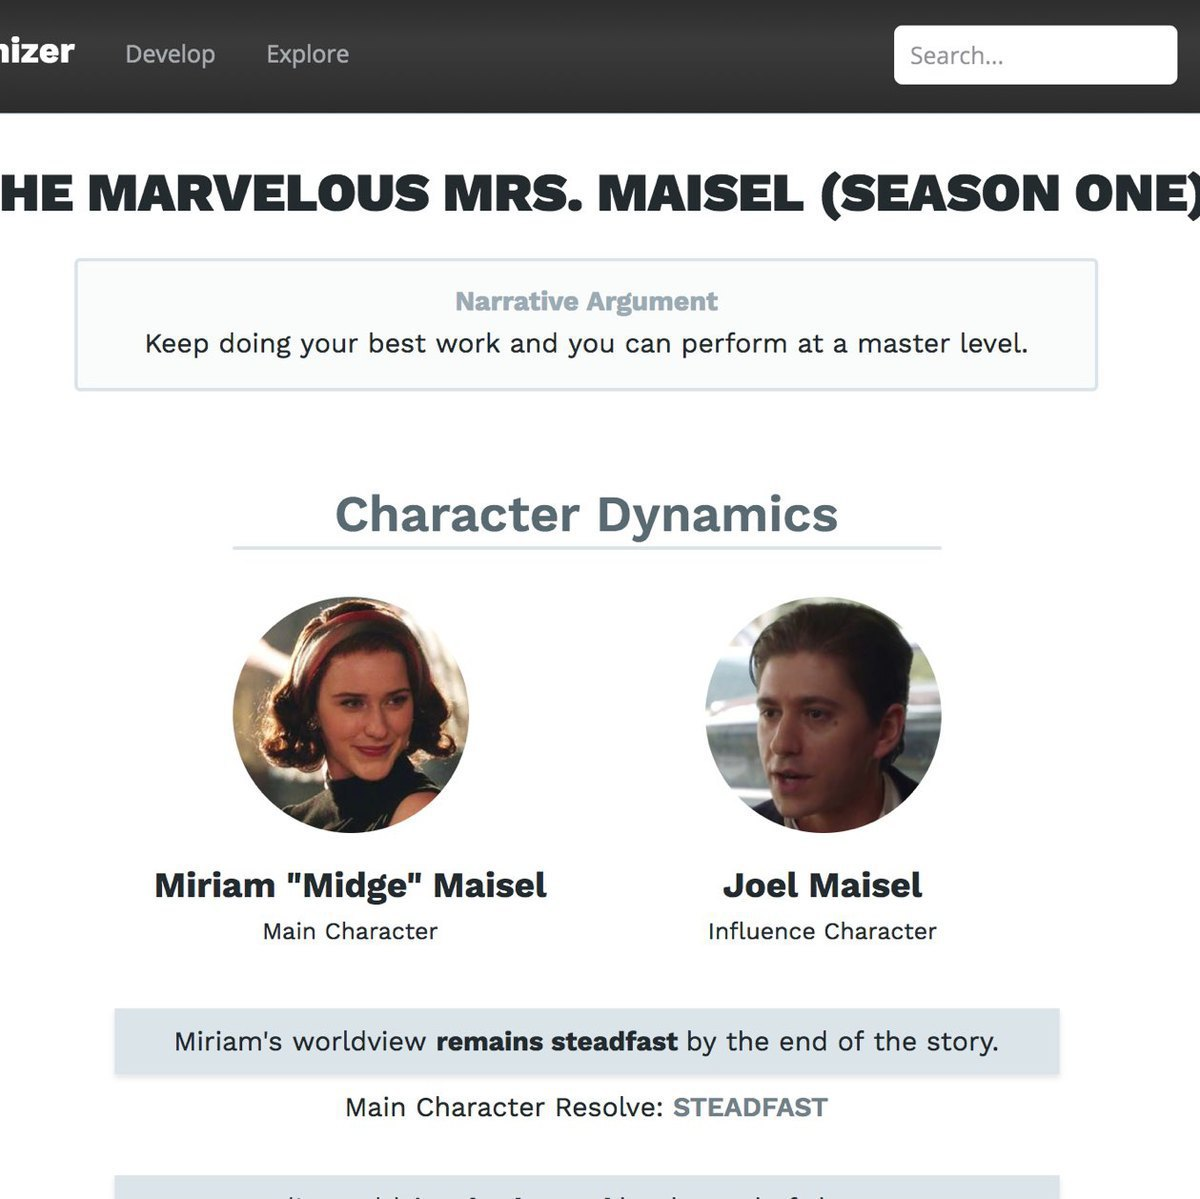 Key Players in _The Marvelous Mrs. Maisel_